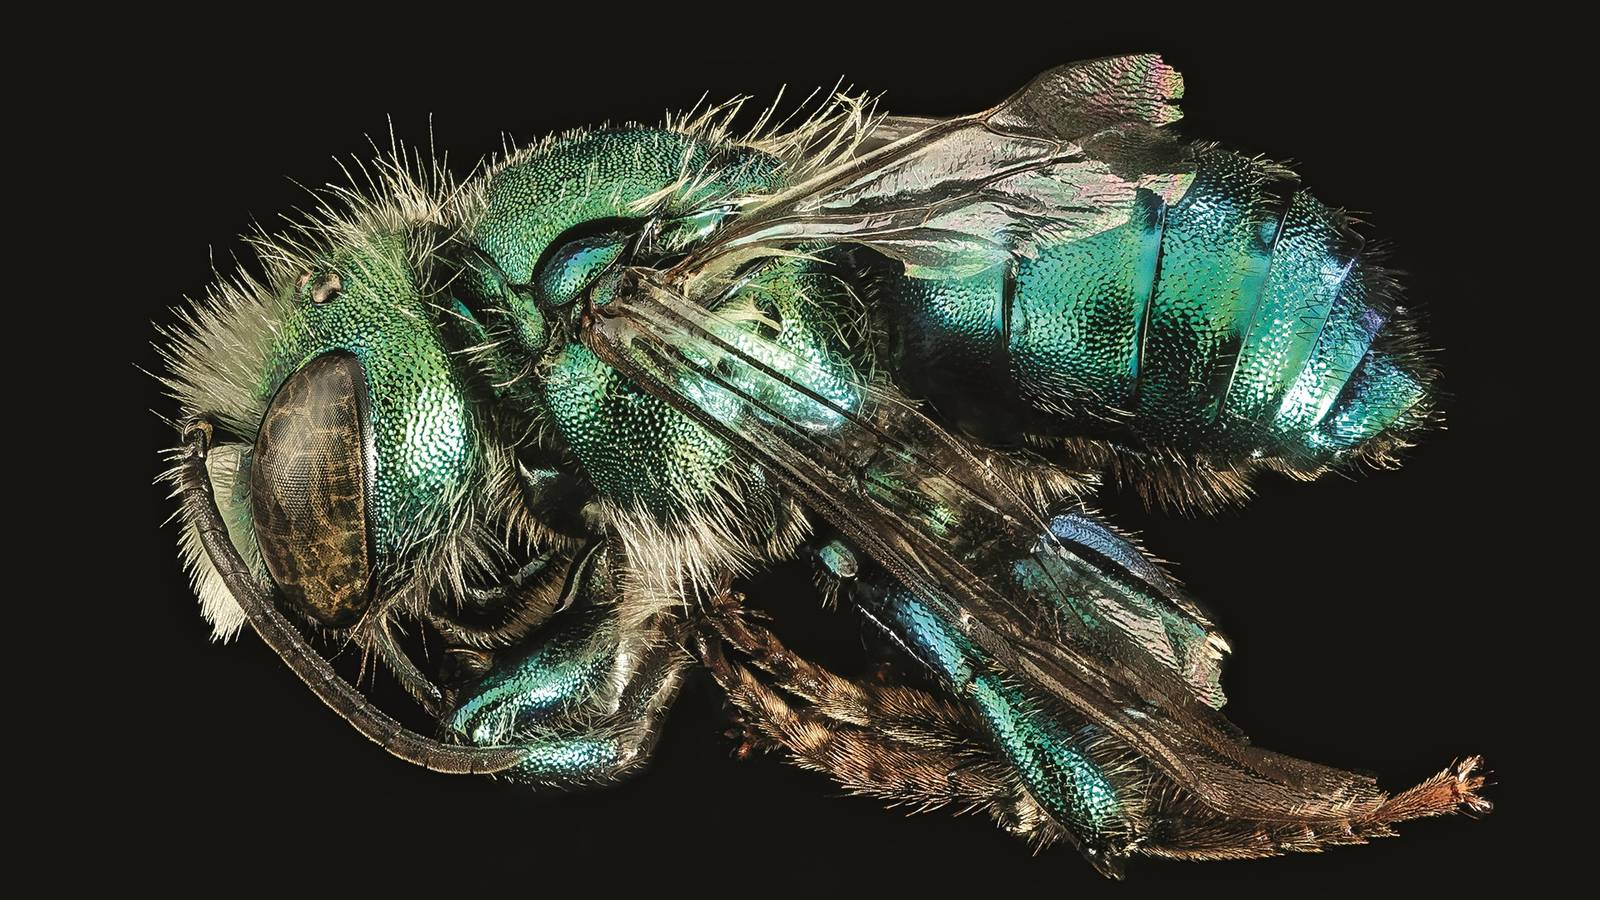 """<h3 style=""""text-align: center; padding: 50px;""""><span class=""""text-Intro-style""""><em>Osmia bruneri</em> (bee), Yellowstone National Park, Wyoming. © ELIZABETH GARCIA AND WAYNE BOO/USGS BEE INVENTORY AND MONITORING LAB</span></h3>"""